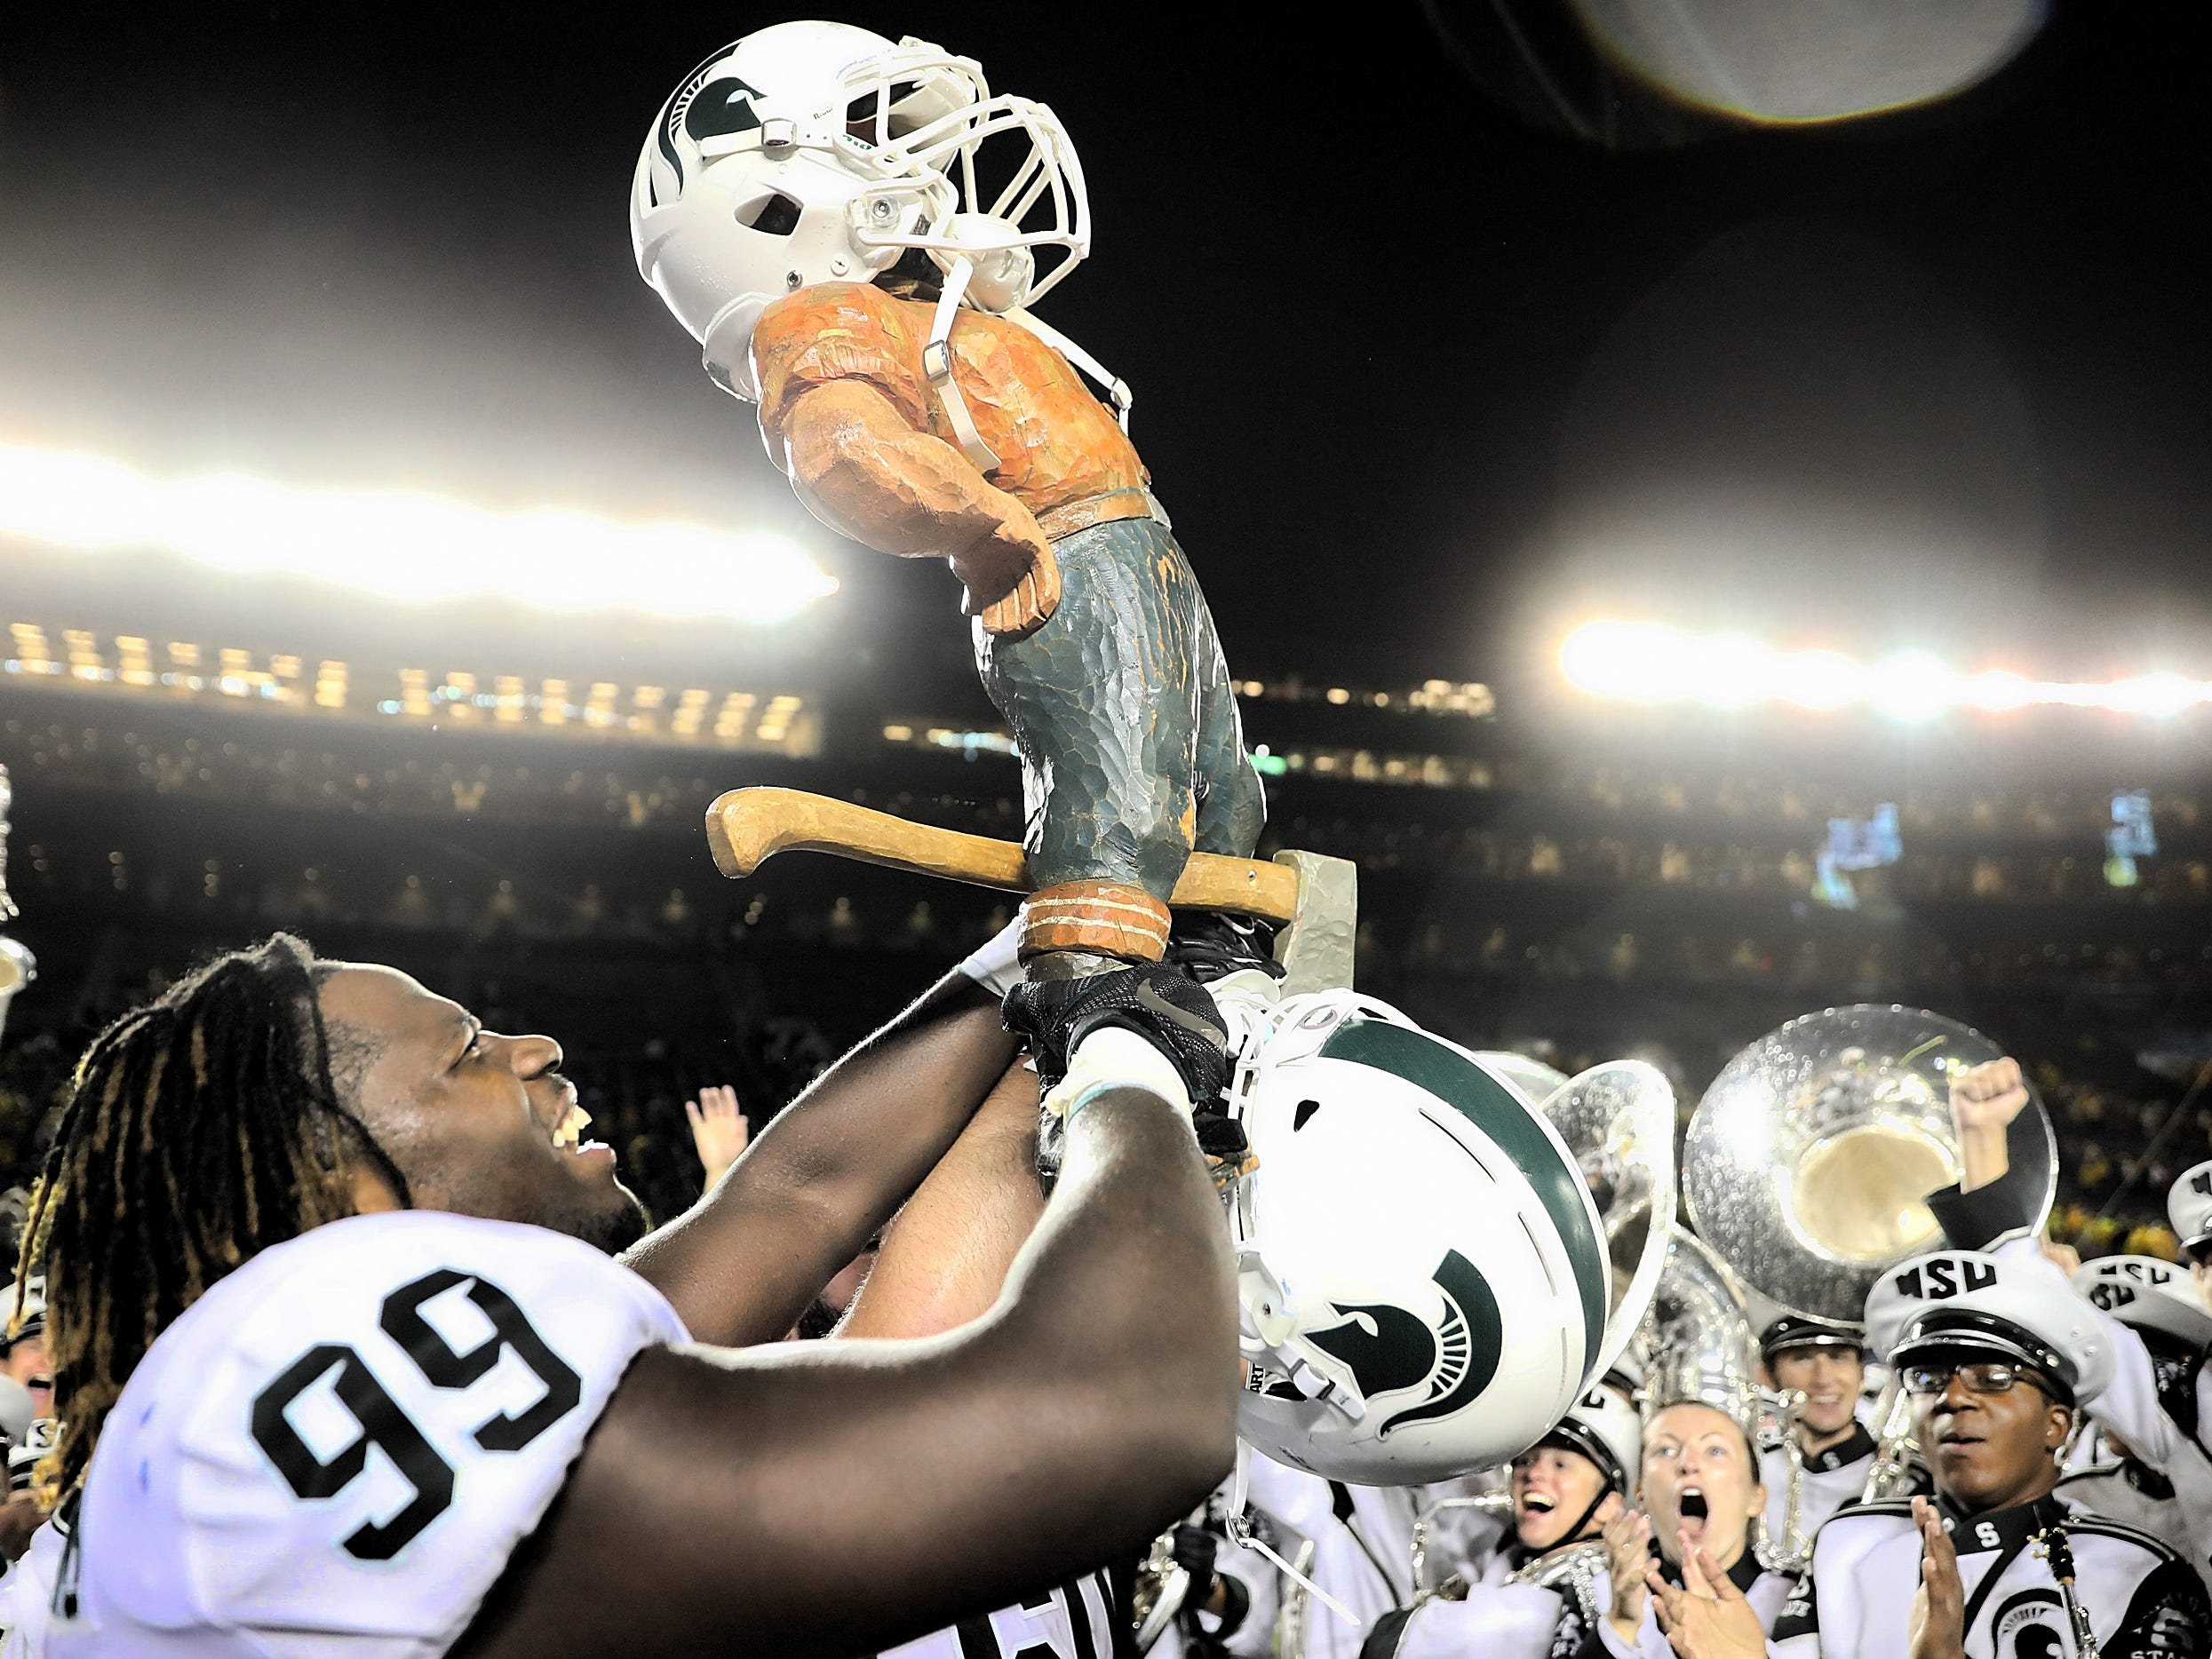 Oct . 7, 2017: Unranked Michigan State 14, No. 7 Michigan 10: Raequan Spartans celebrates with the Paul Bunyan Trophy.